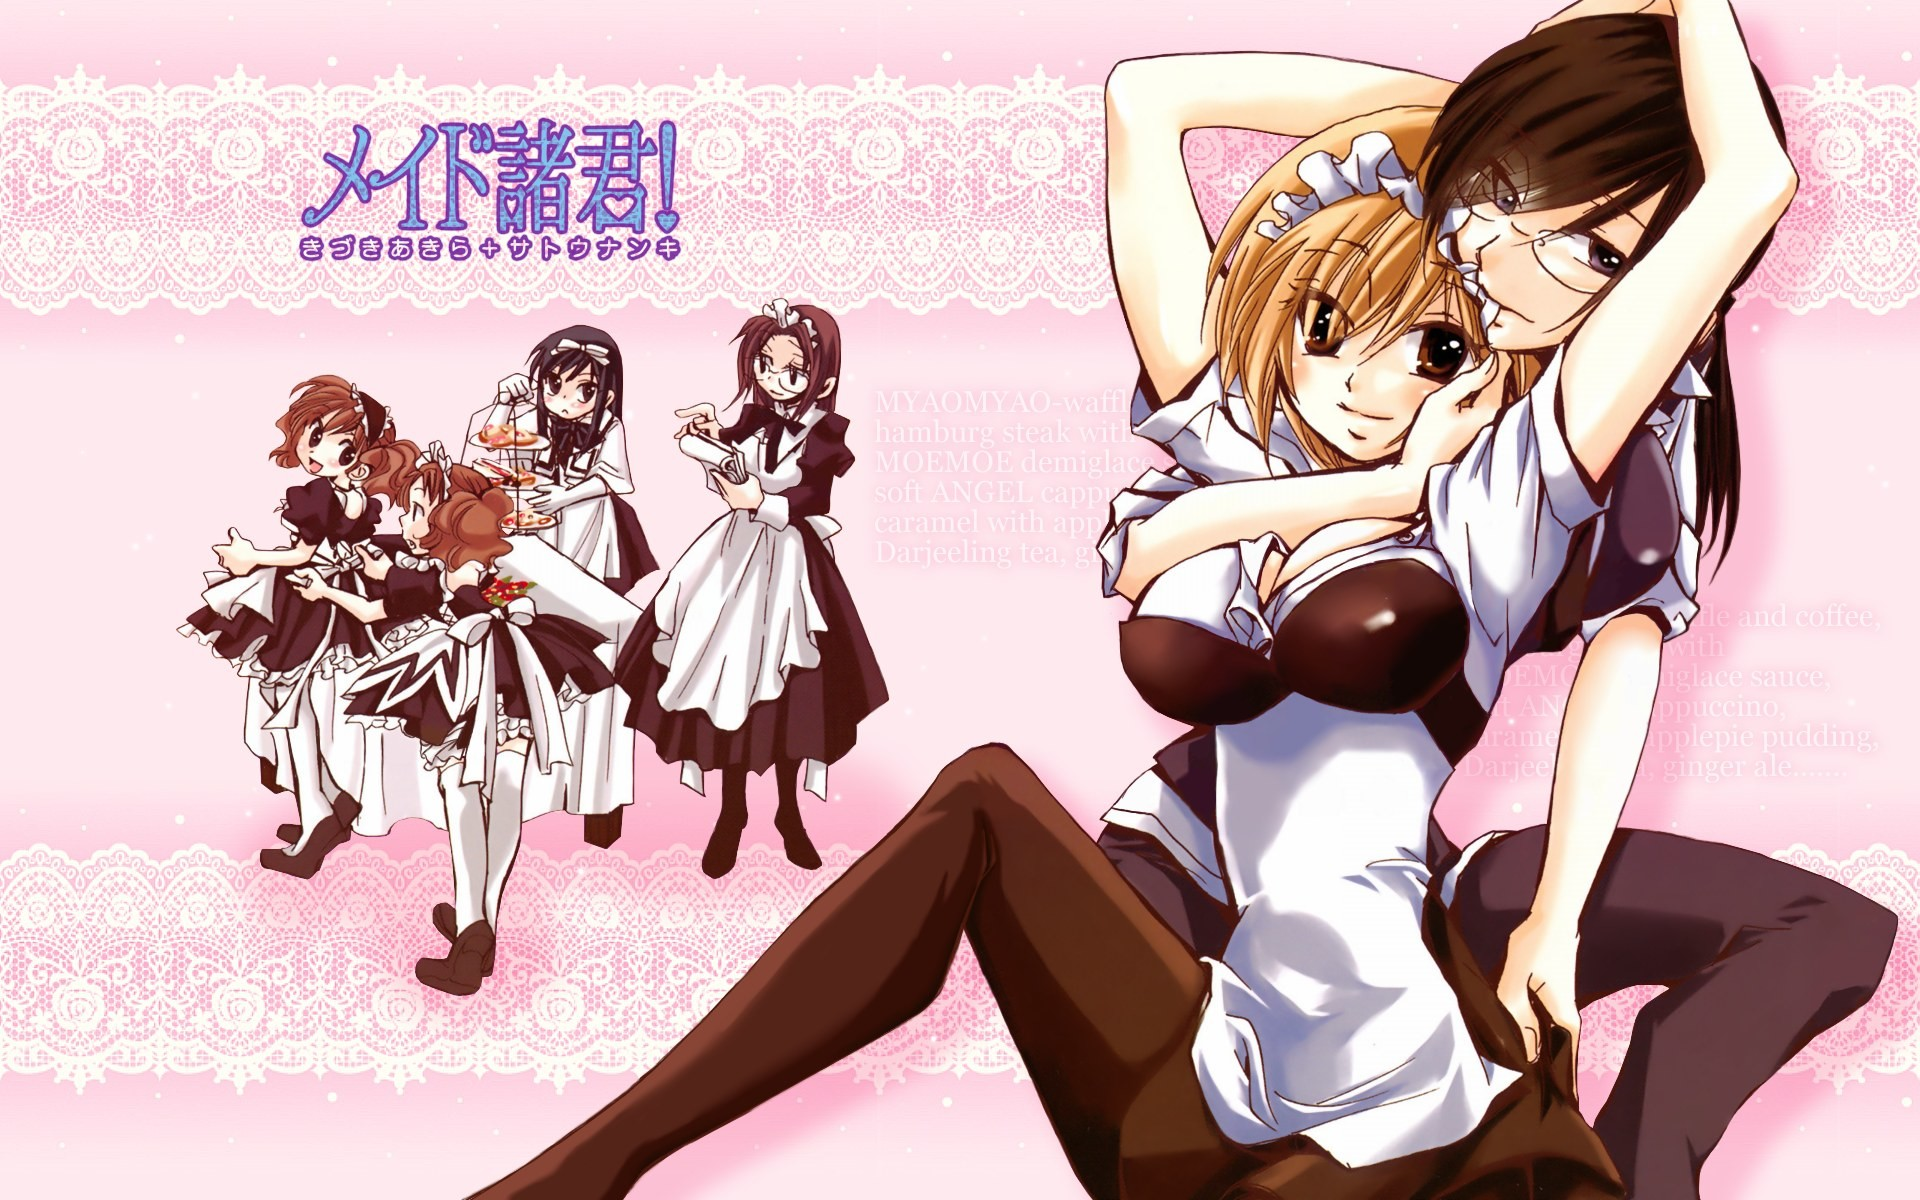 1920x1200 Anime - Maid Shokun Maid Wallpaper